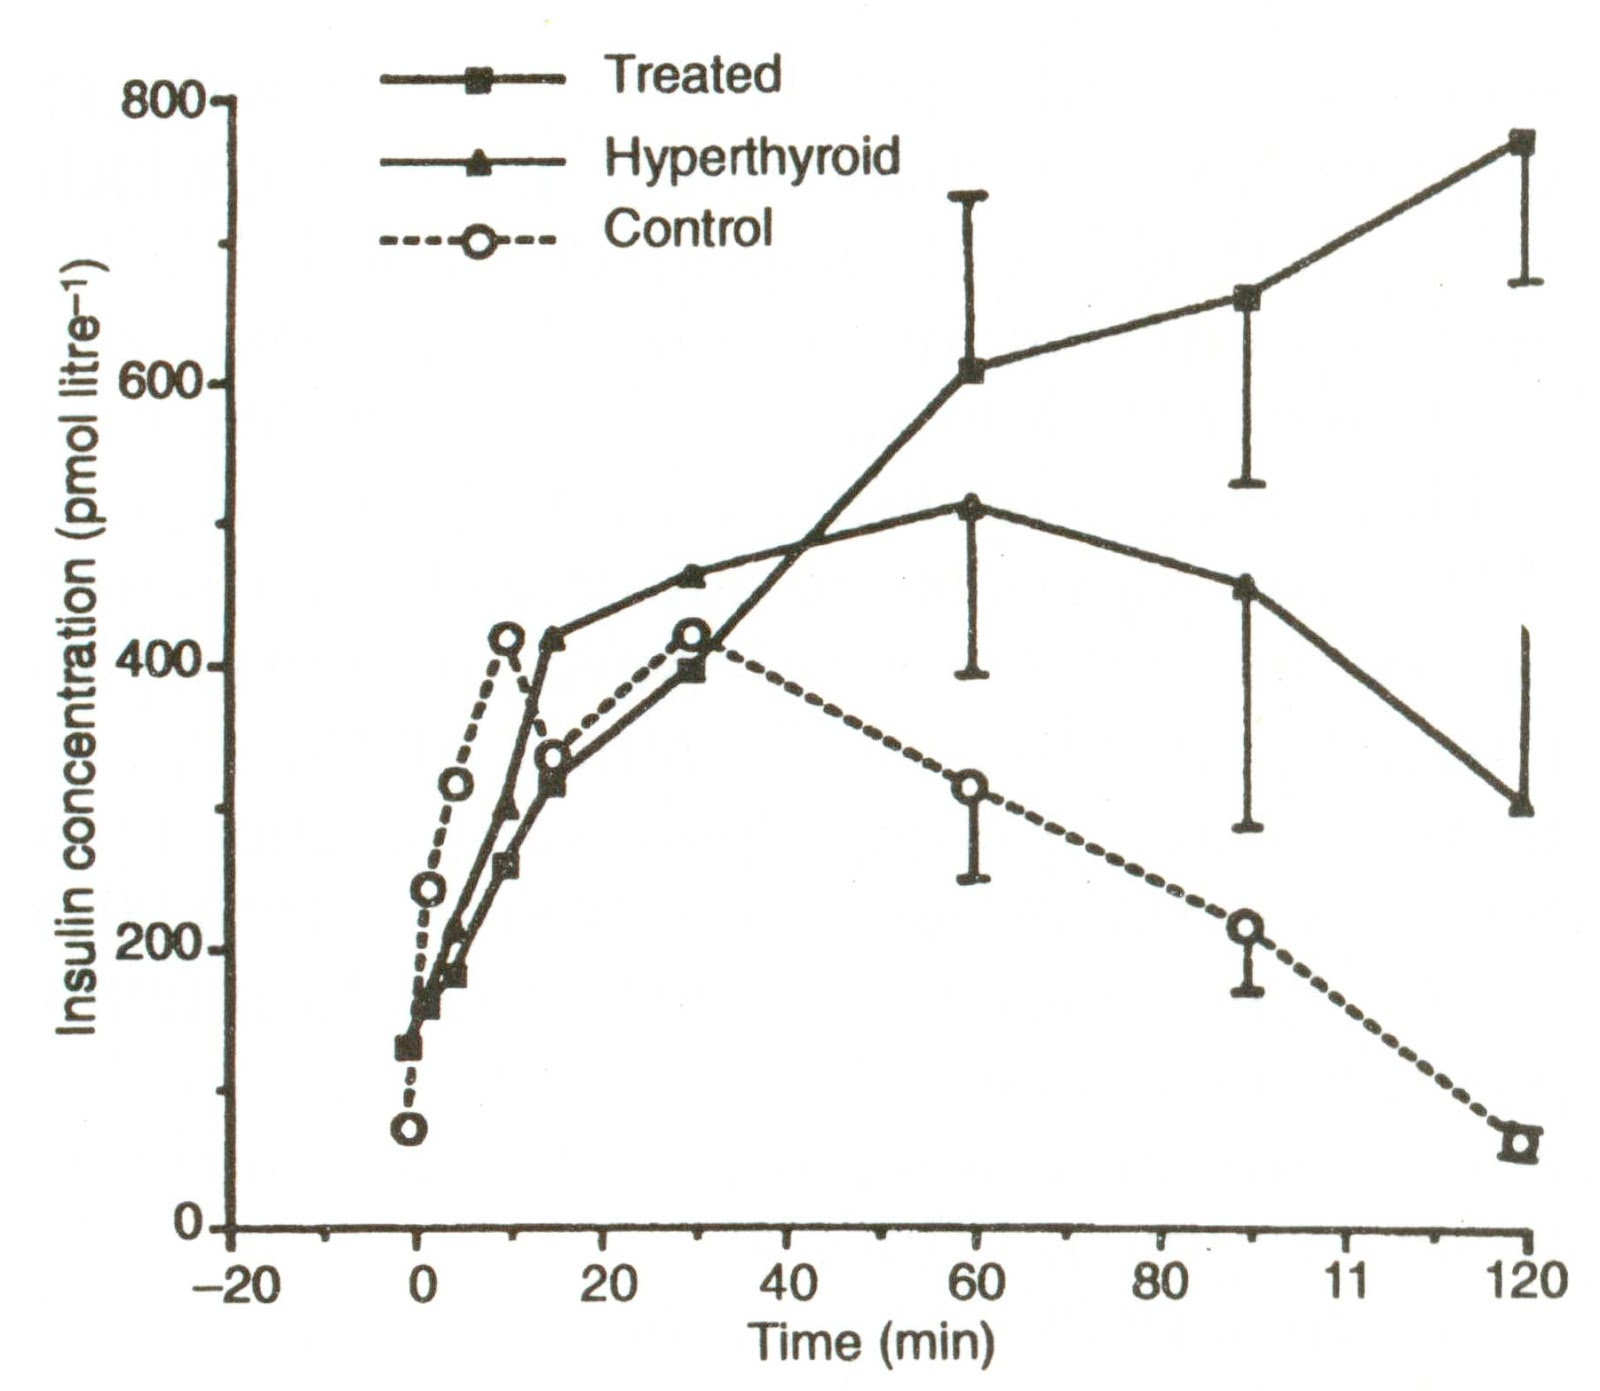 medium resolution of serum insulin concentrations in response to intravenous glucose tolerance test in 11 healthy cats 15 cats with untreated hyperthyroidism